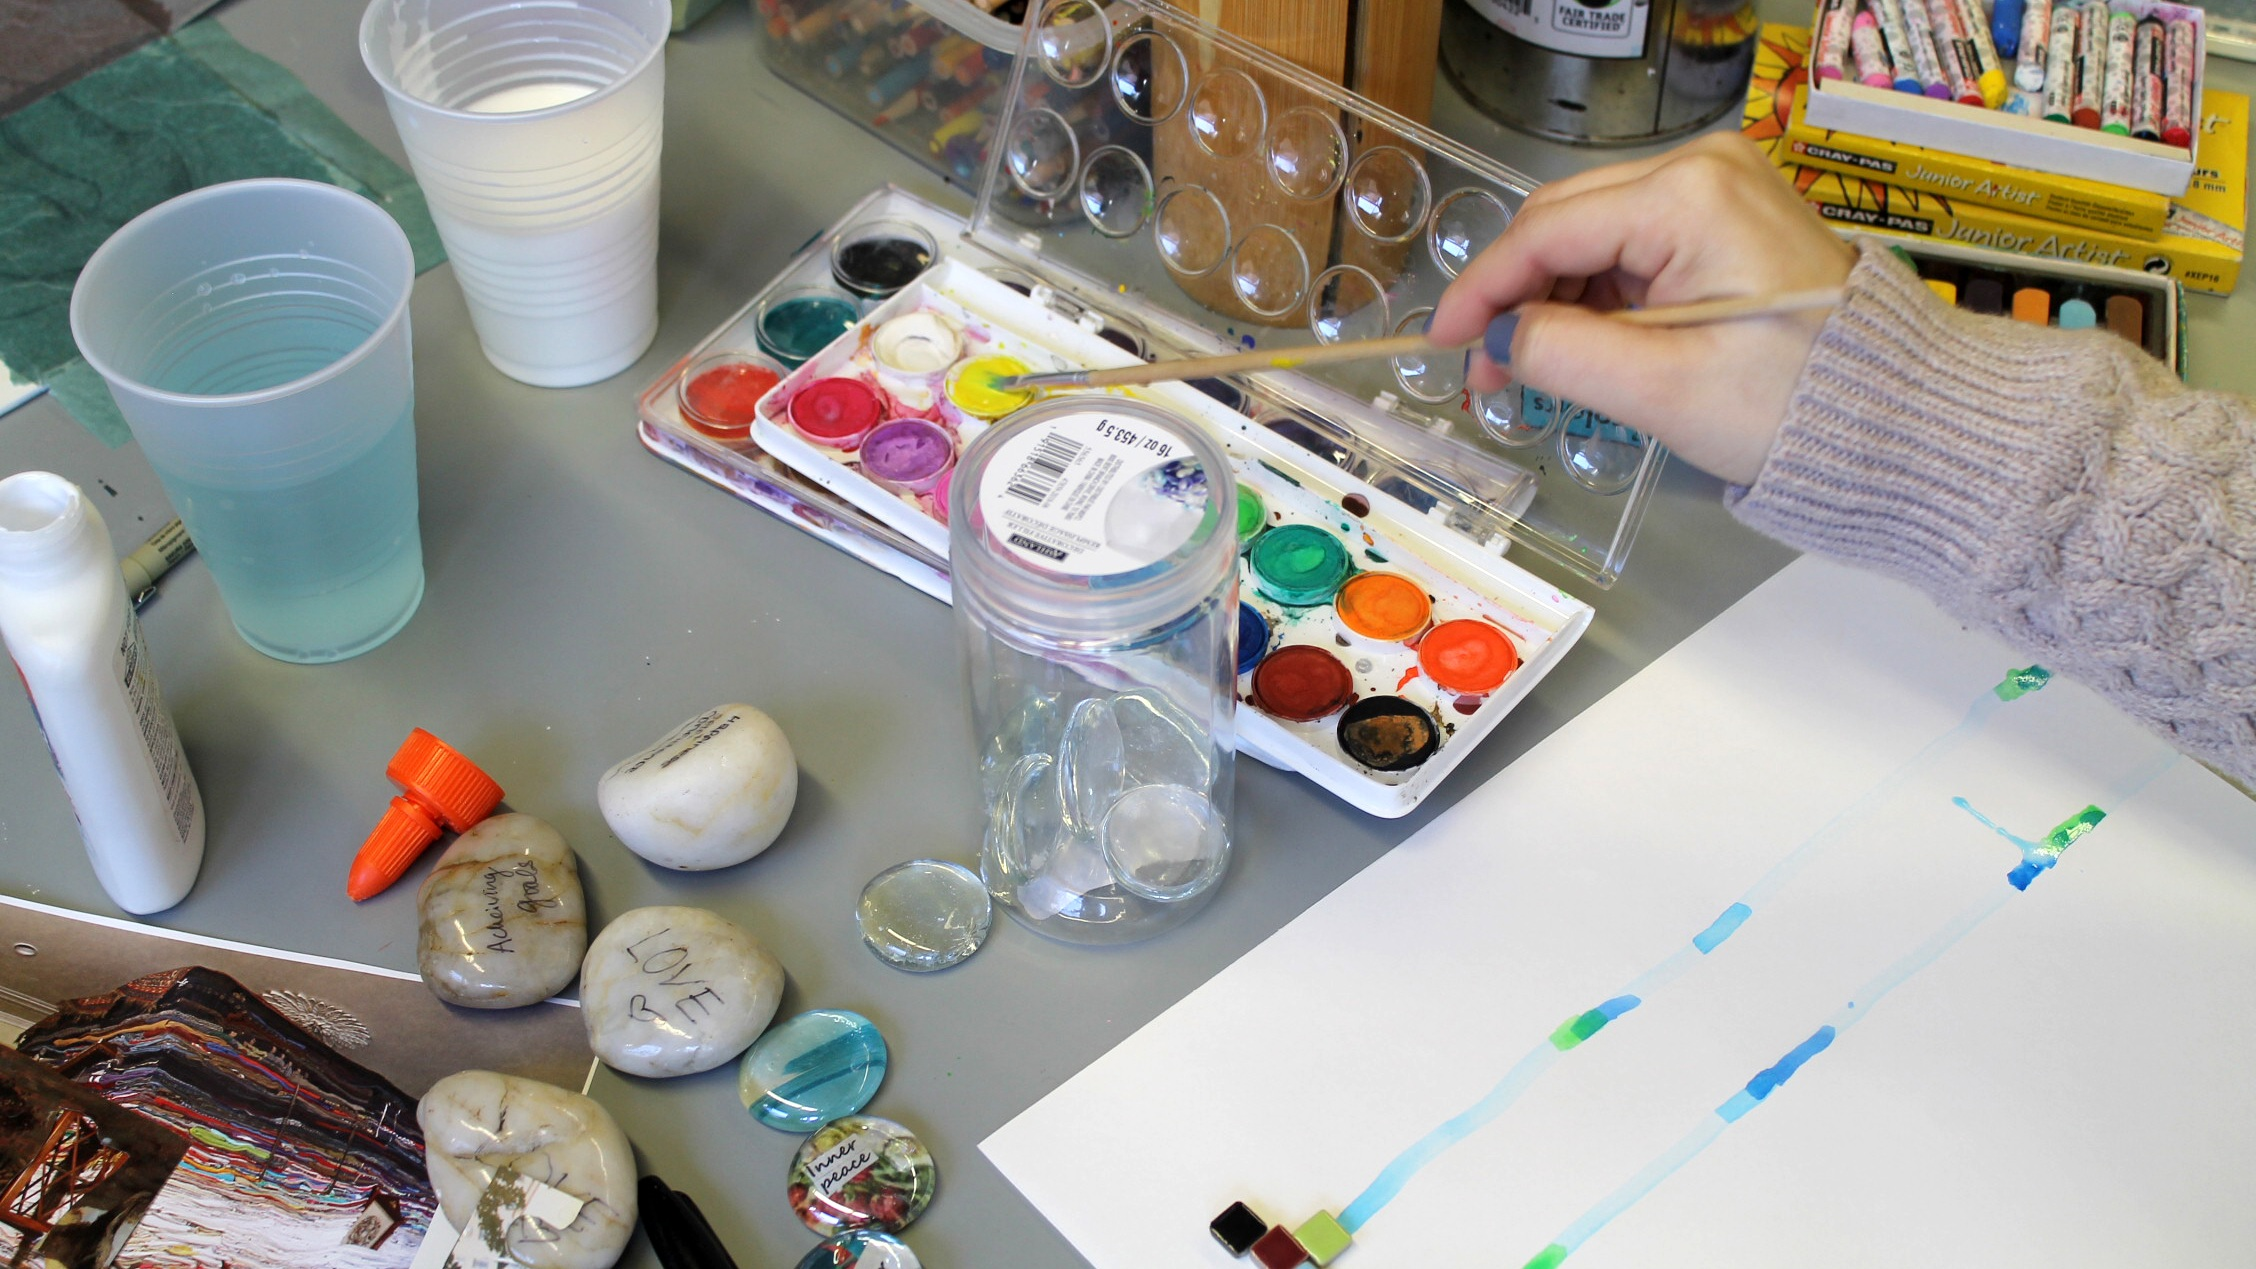 $10,000 - Funds 1 Art Therapy Group for 1 Year